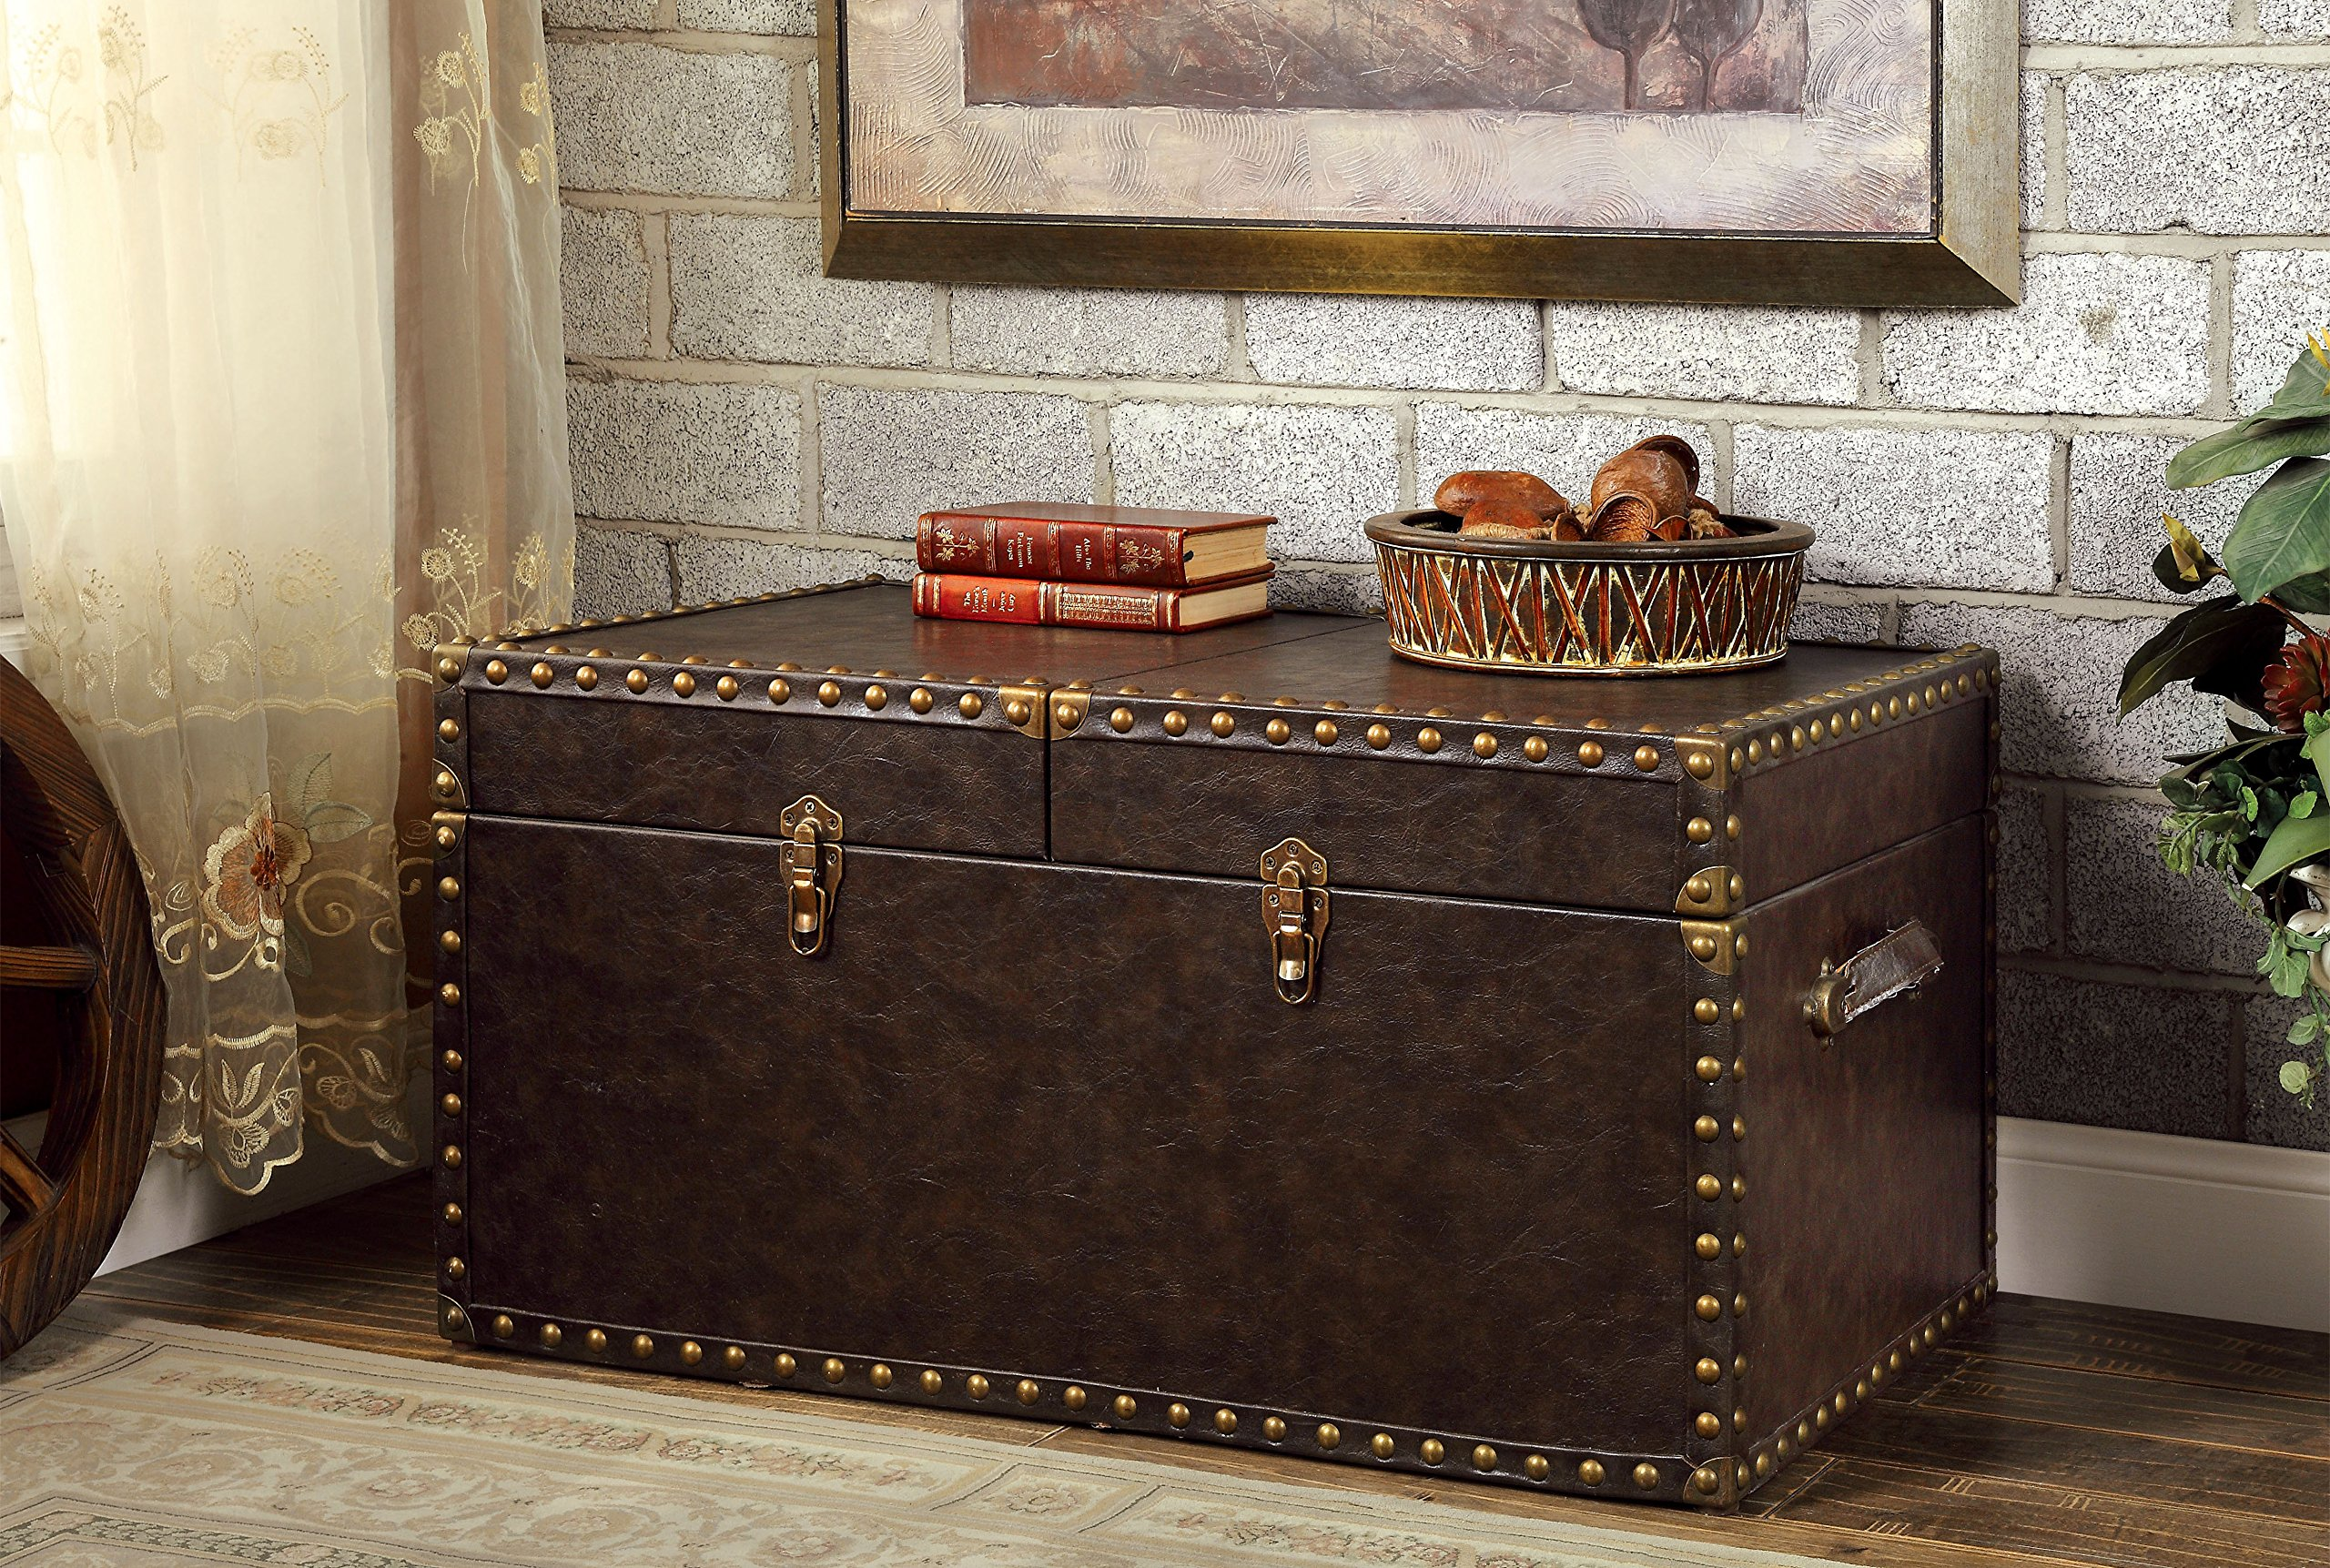 Furniture of America Tesoro Antique Style Storage Trunk, Antique Brown by Furniture of America